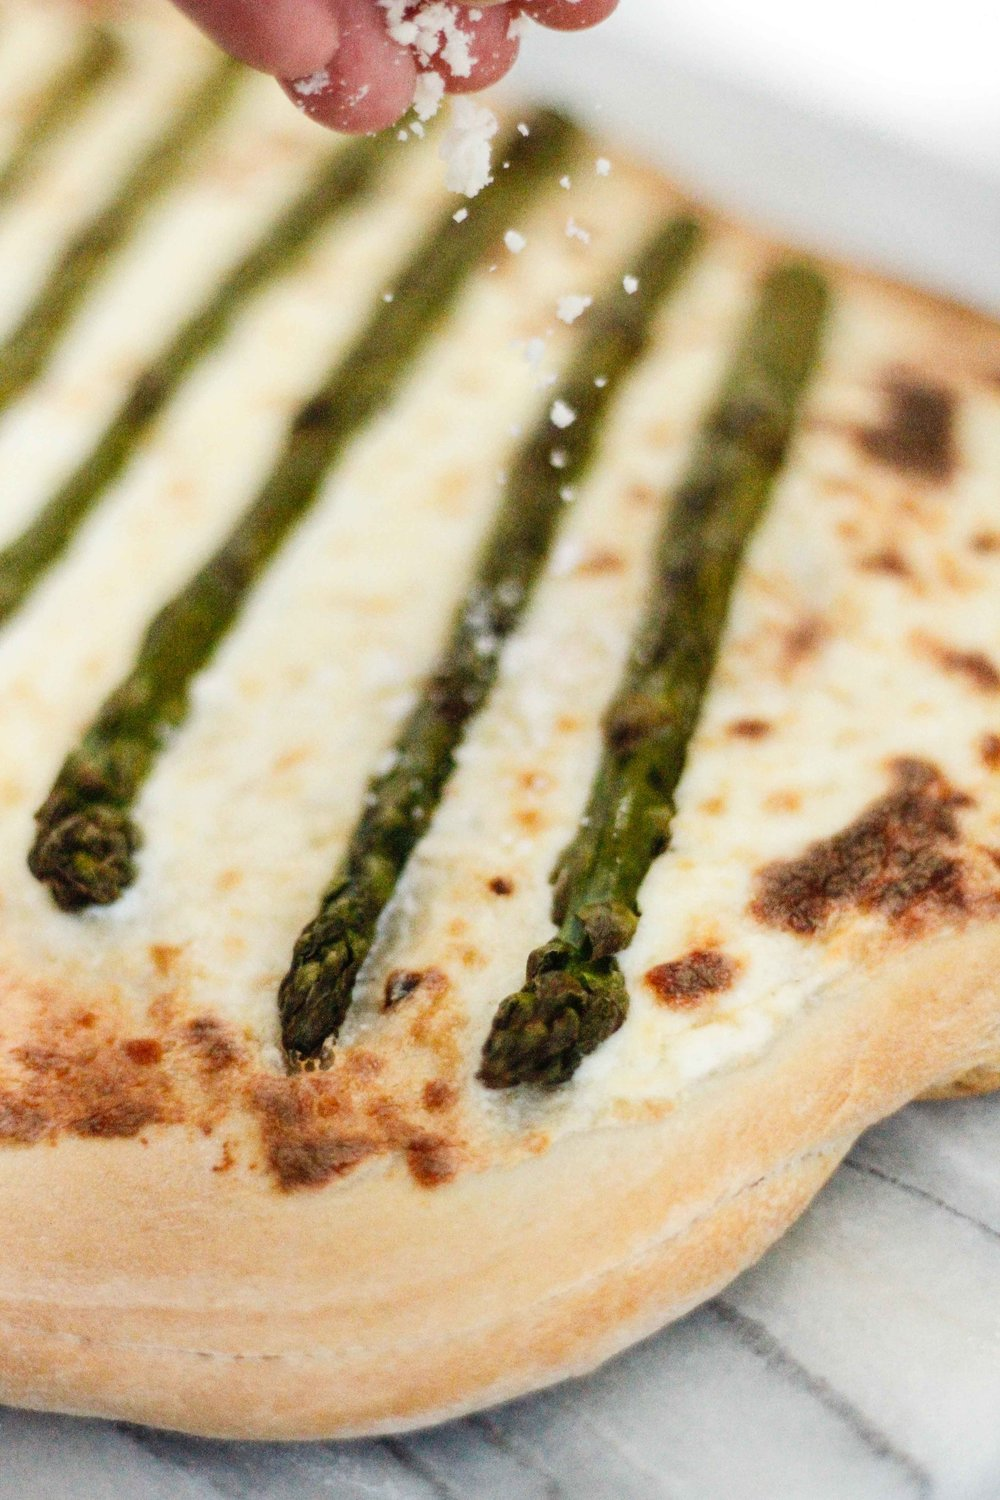 Spring pizza with asparagus and lemon